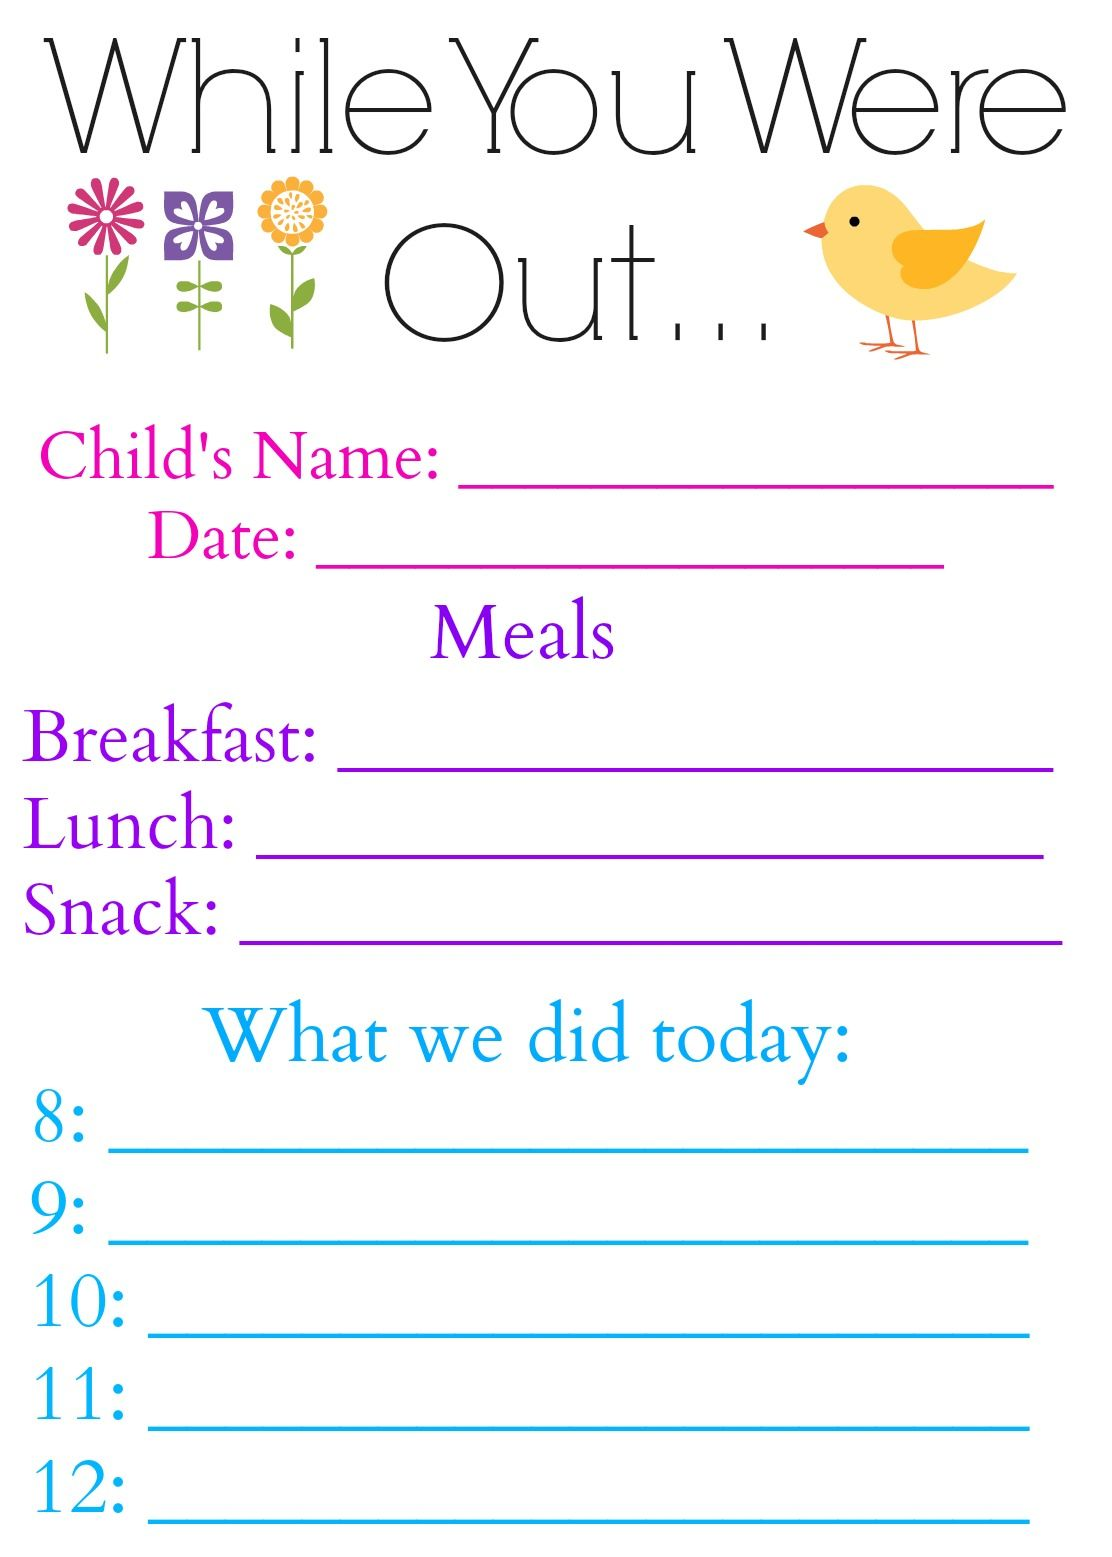 while you were out daily log form for babysitter or nanny